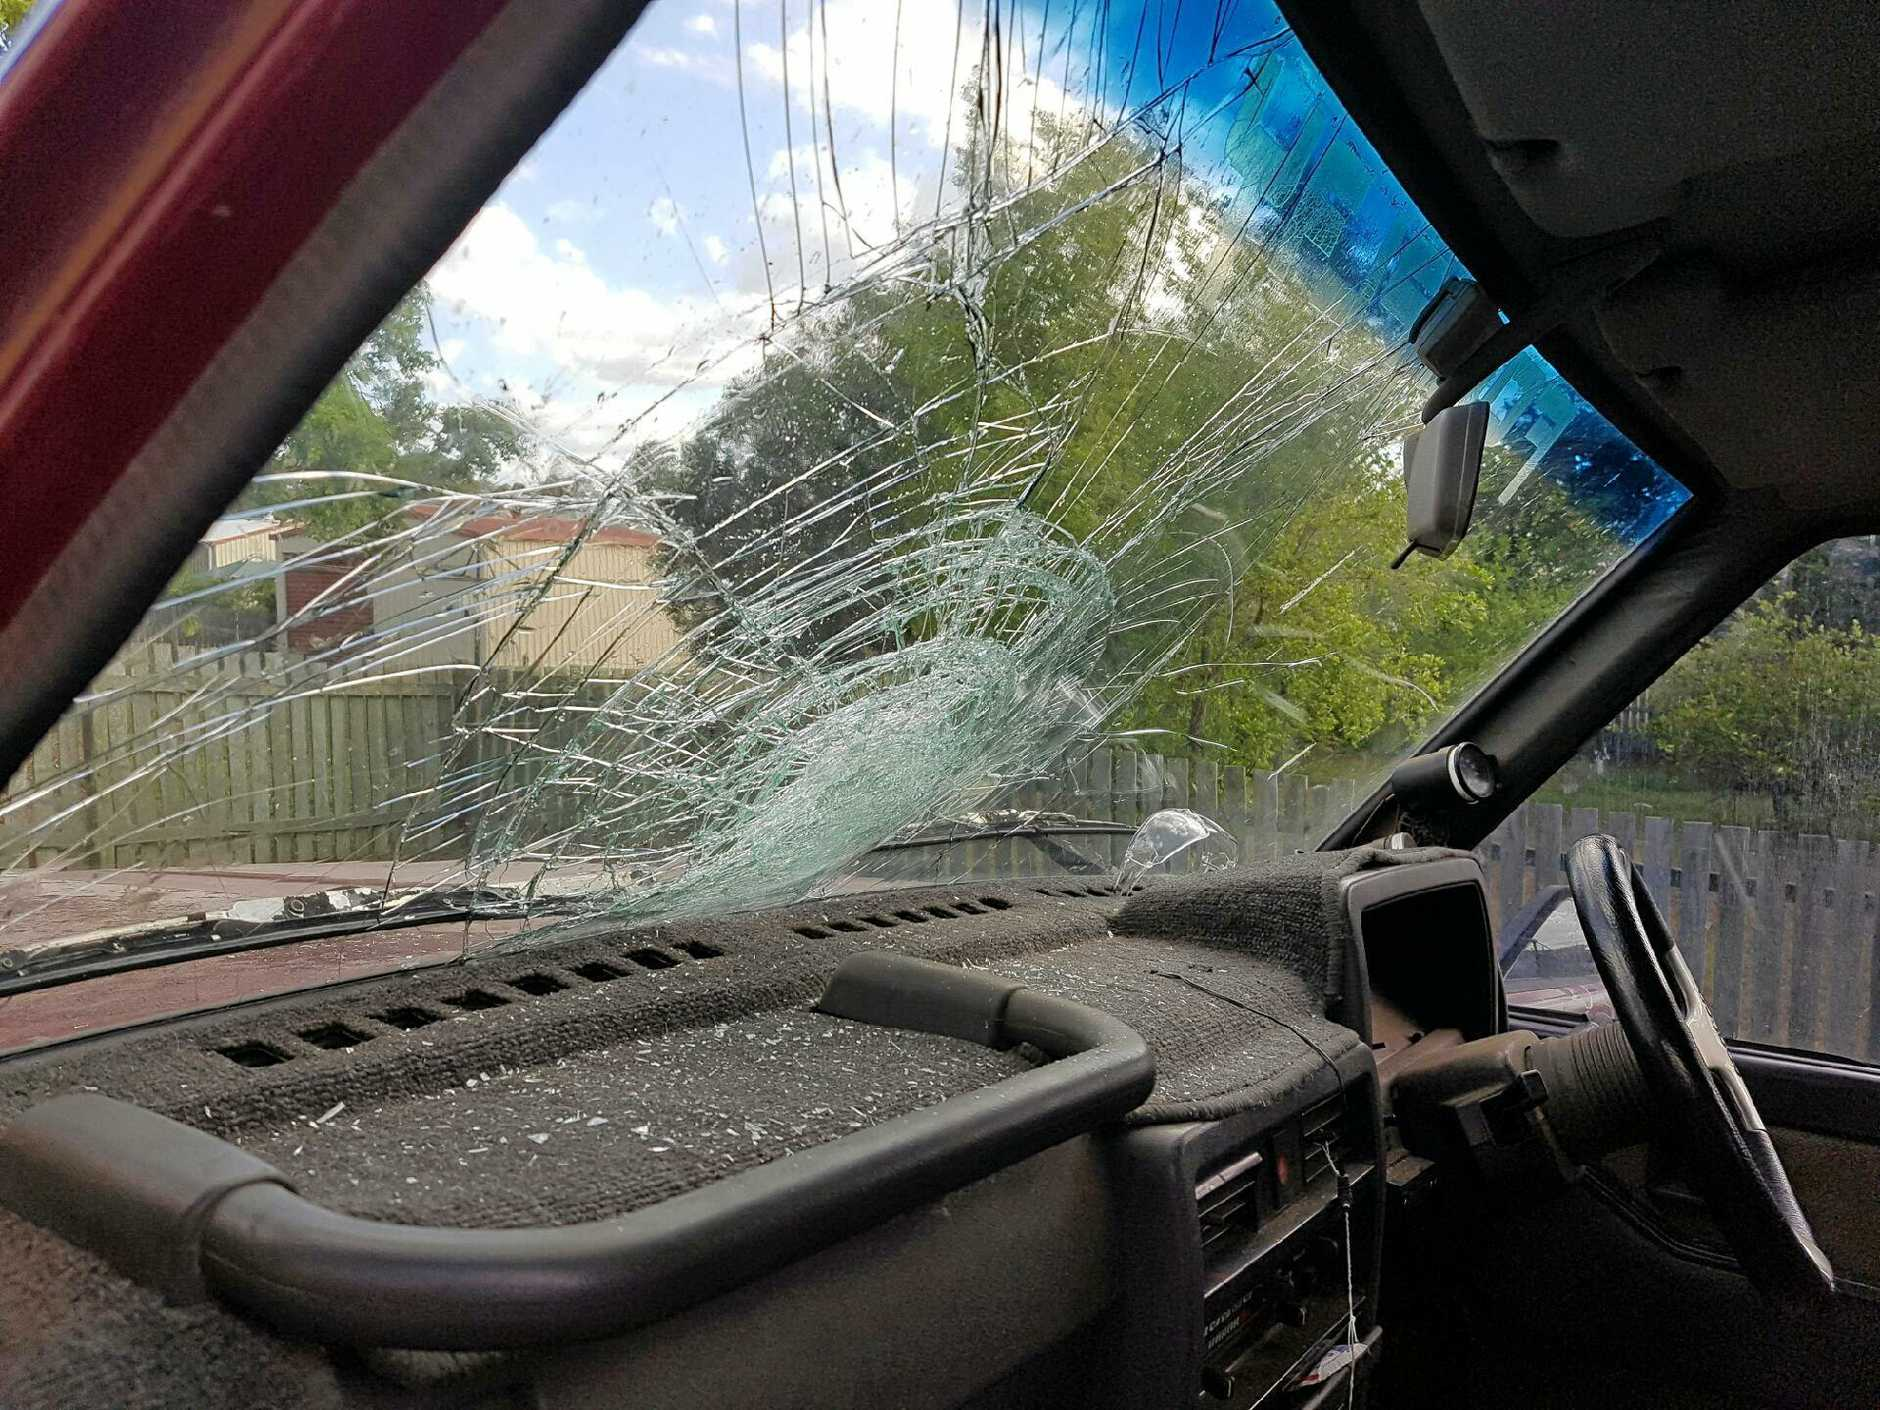 Grant Sommerfeld's said another driver threw a can of energy drink out of their window while driving.